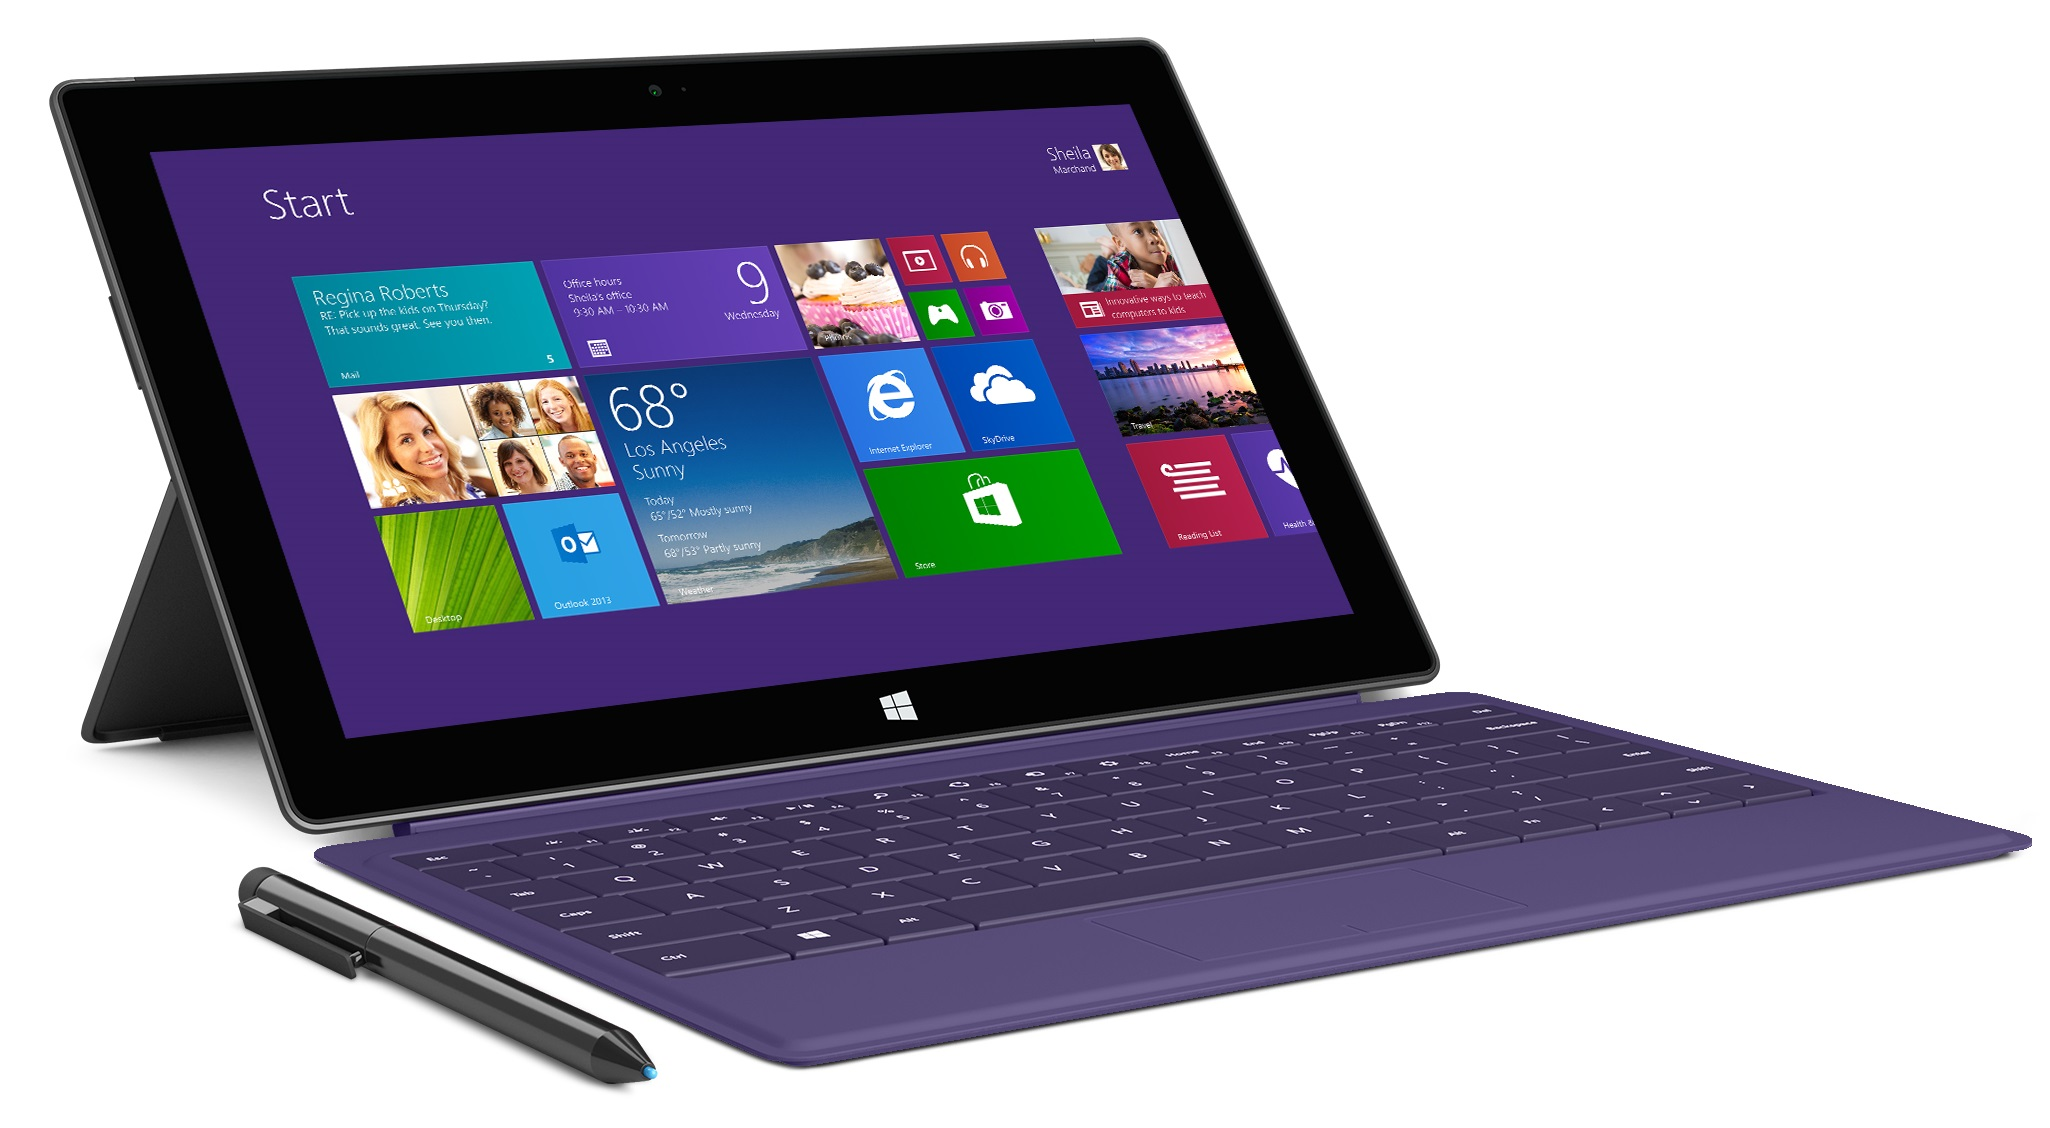 Wallpaper for Surface Tablet